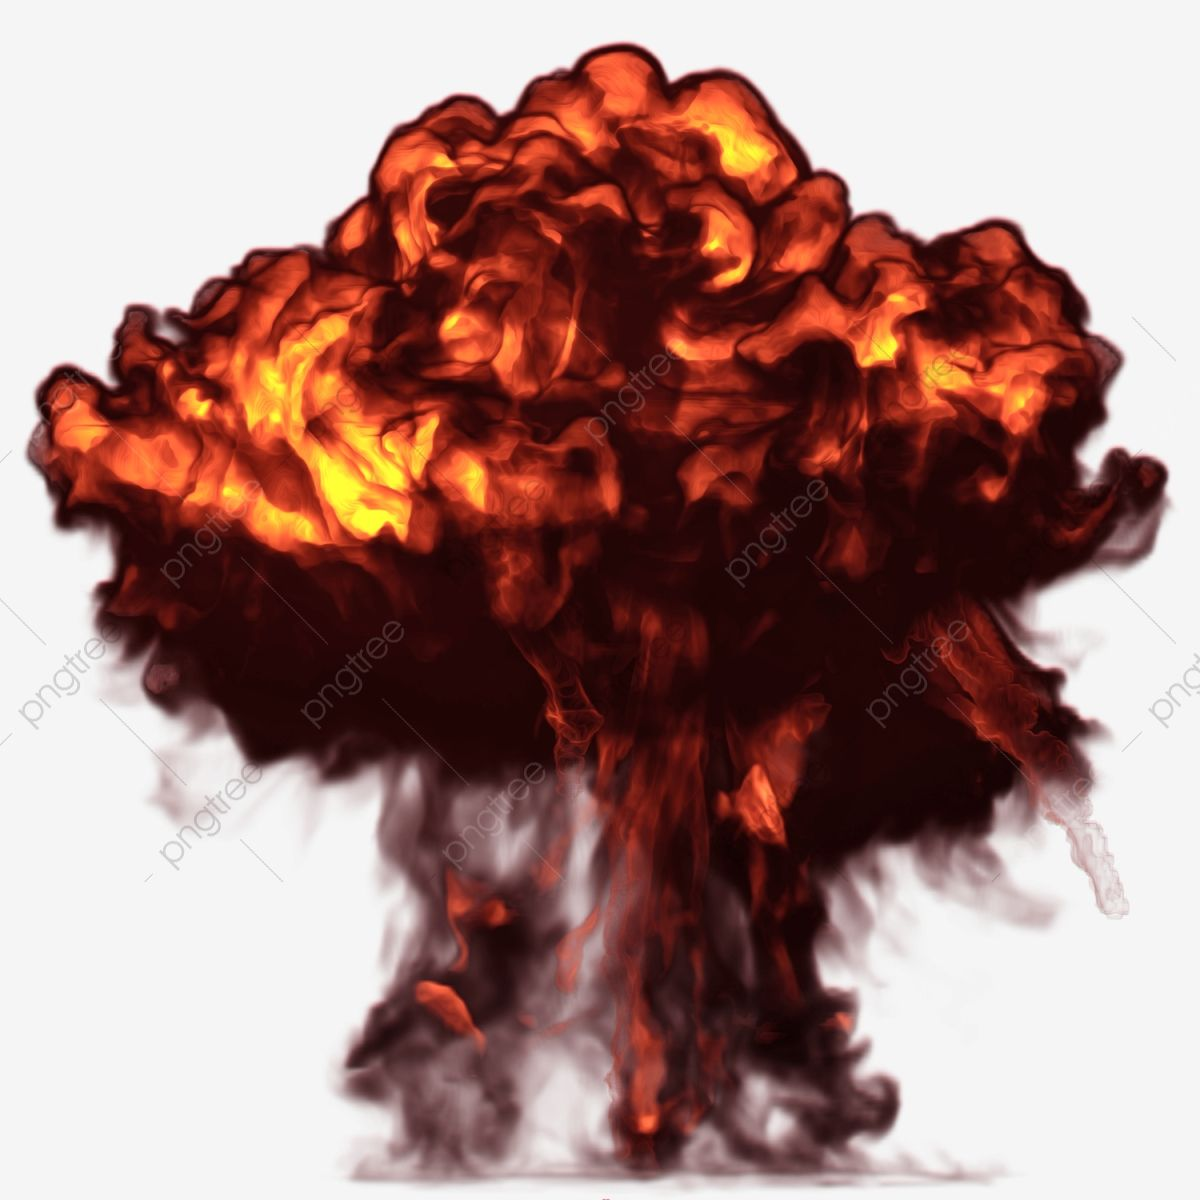 Fire Explosion Explosion Red Fire Png Transparent Clipart Image And Psd File For Free Download Fire Icons Clipart Images Fire Font